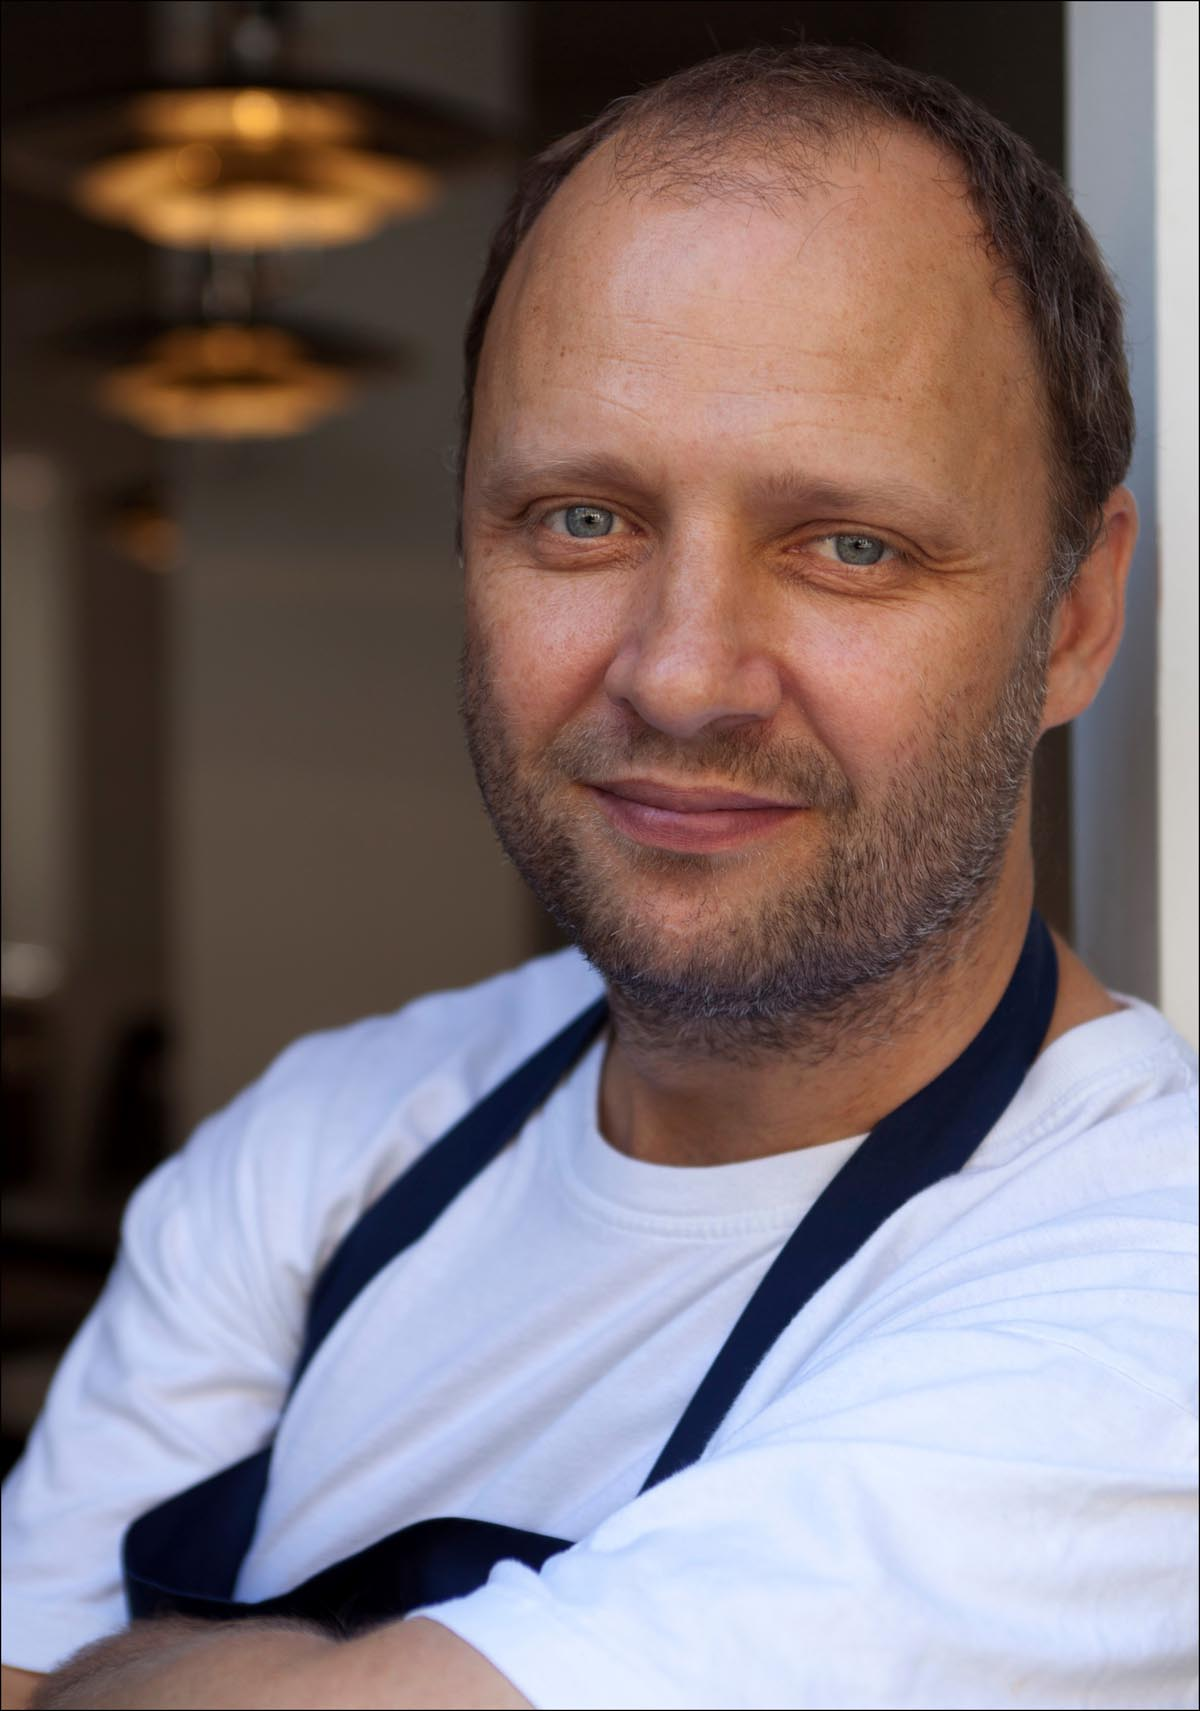 Former chip fryer is Britain's top chef